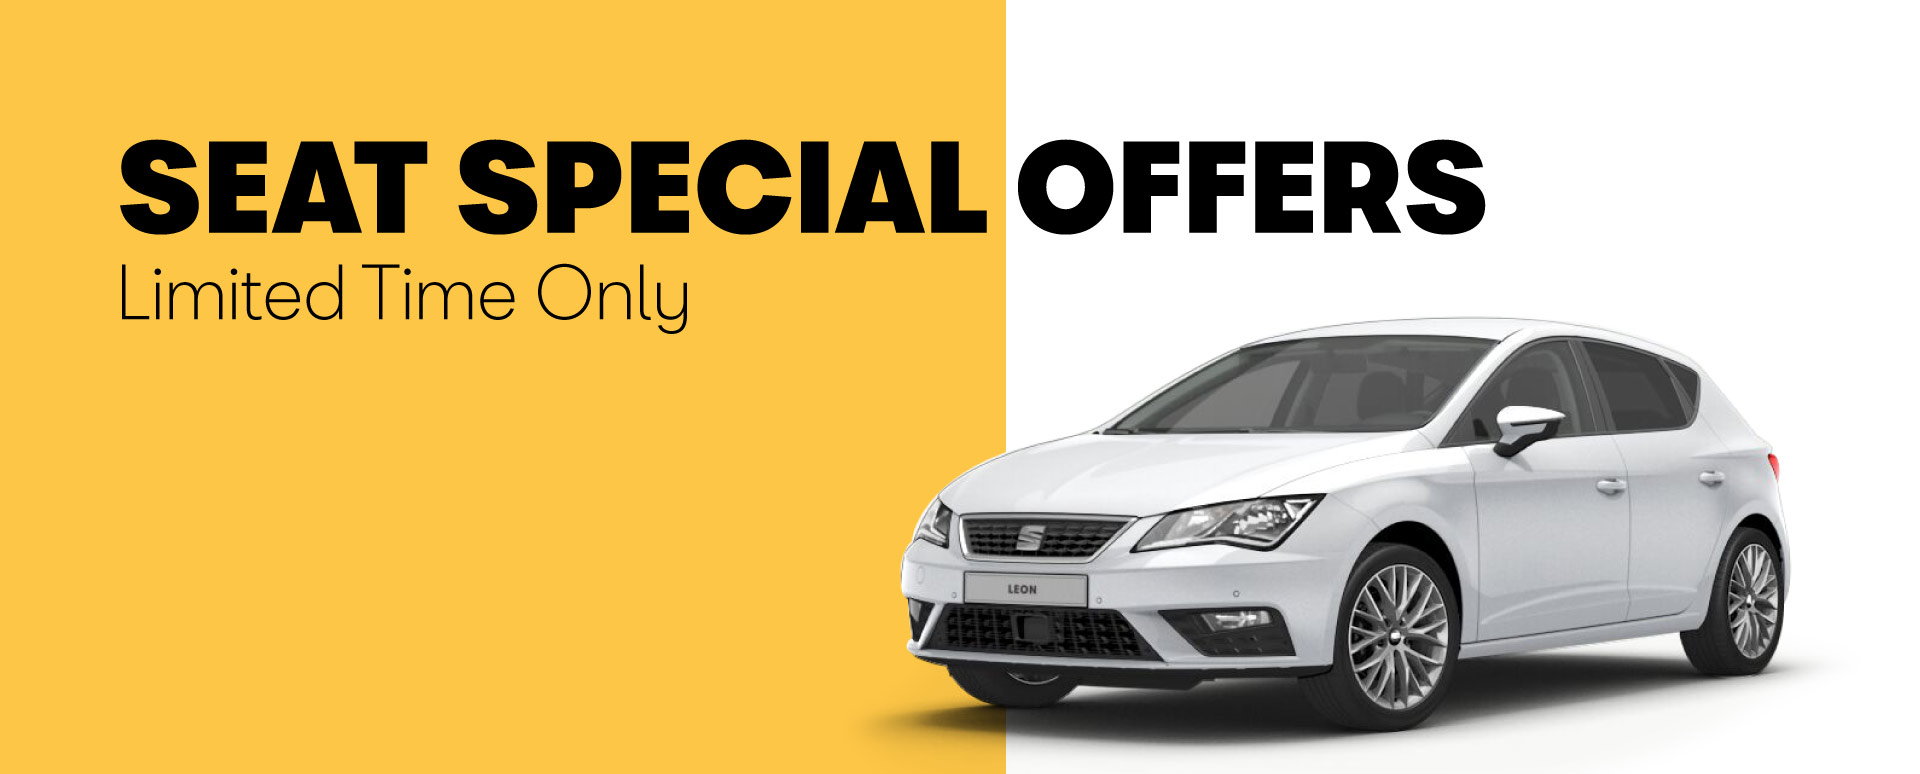 SEAT hot stock offers